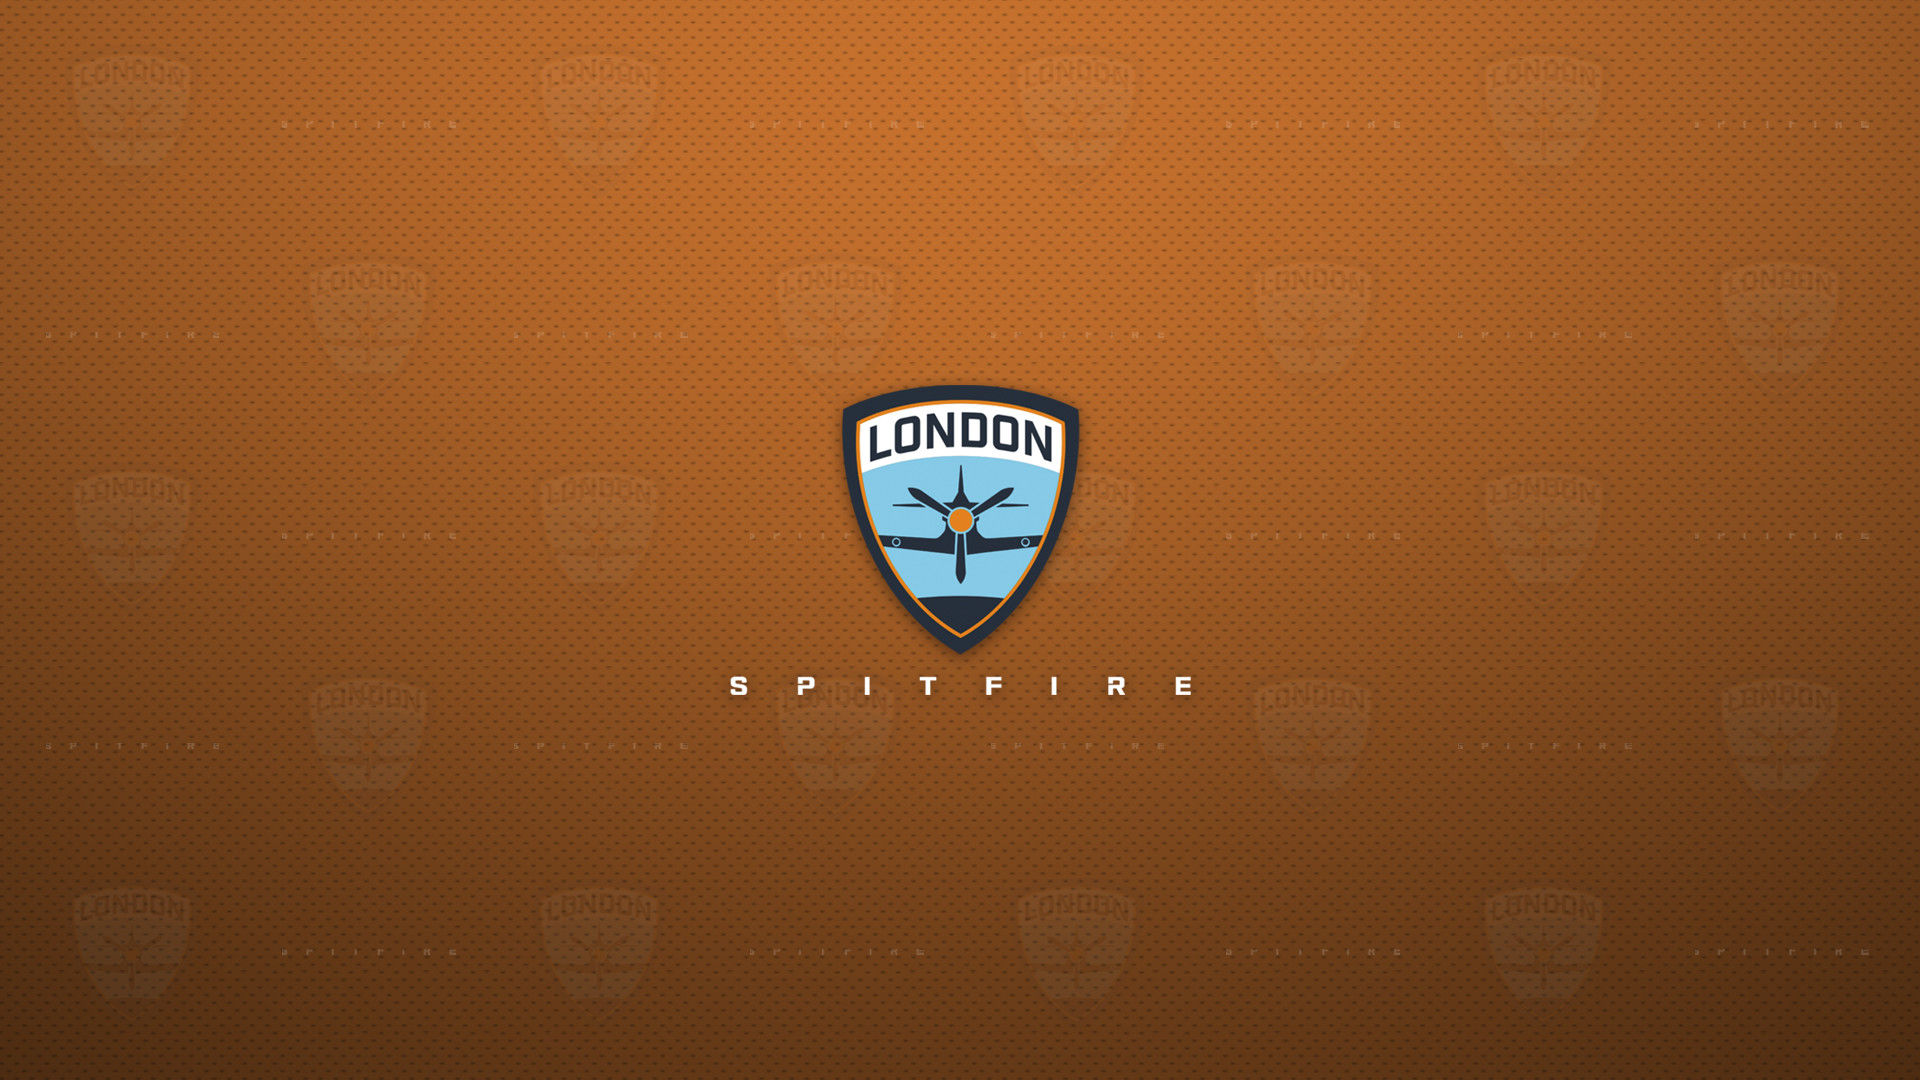 Res: 1920x1080, London Spitfire Desktop and Mobile Wallpapers (Blue, Navy and Orange)